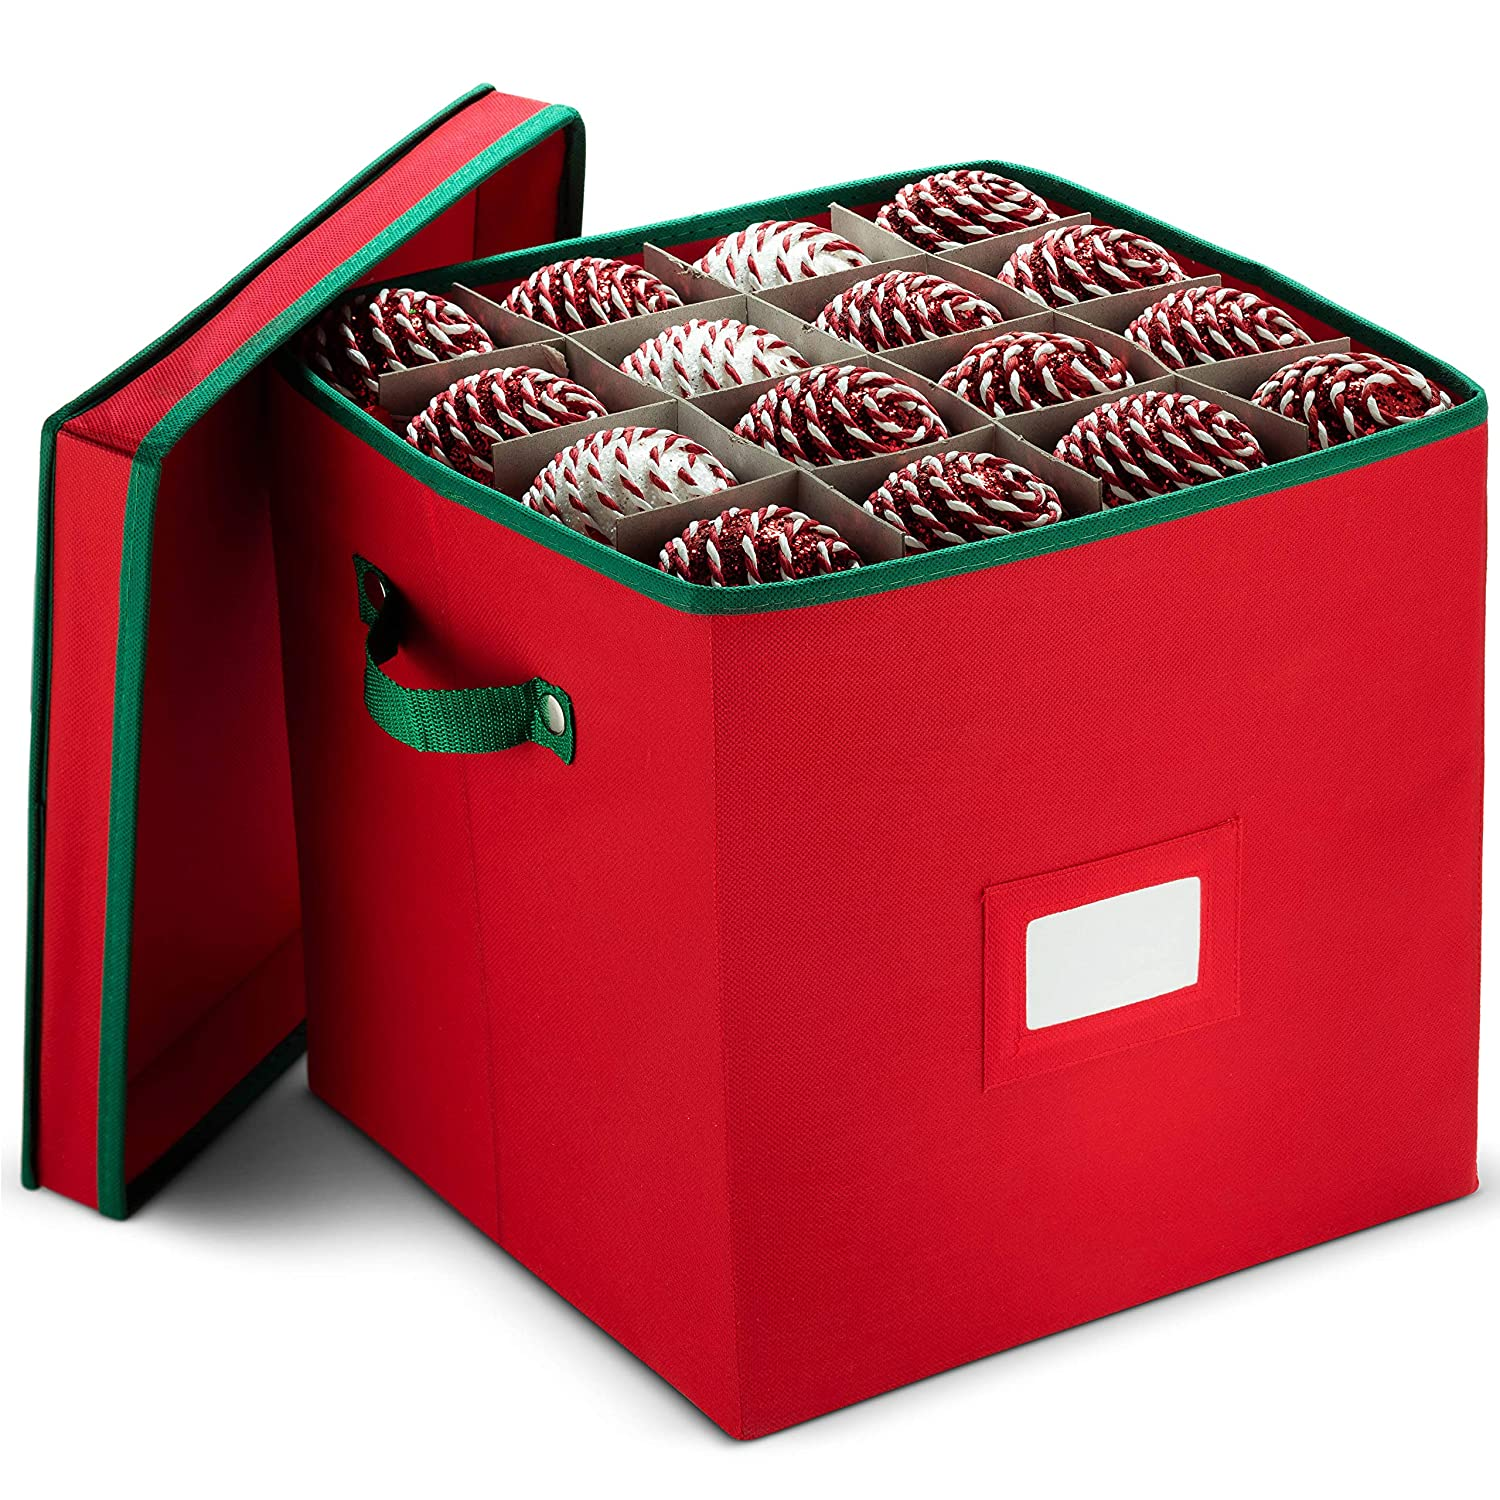 Christmas Ornament Storage Box With Lid - Protect and Keeps Safe Up To 64 Holiday Ornaments & Xmas Decorations Accessories, Durable Non-Woven Ornament Storage Container, 3' Compartments & Two Handles 3 Compartments & Two Handles ZOBER ZCP-109-rd